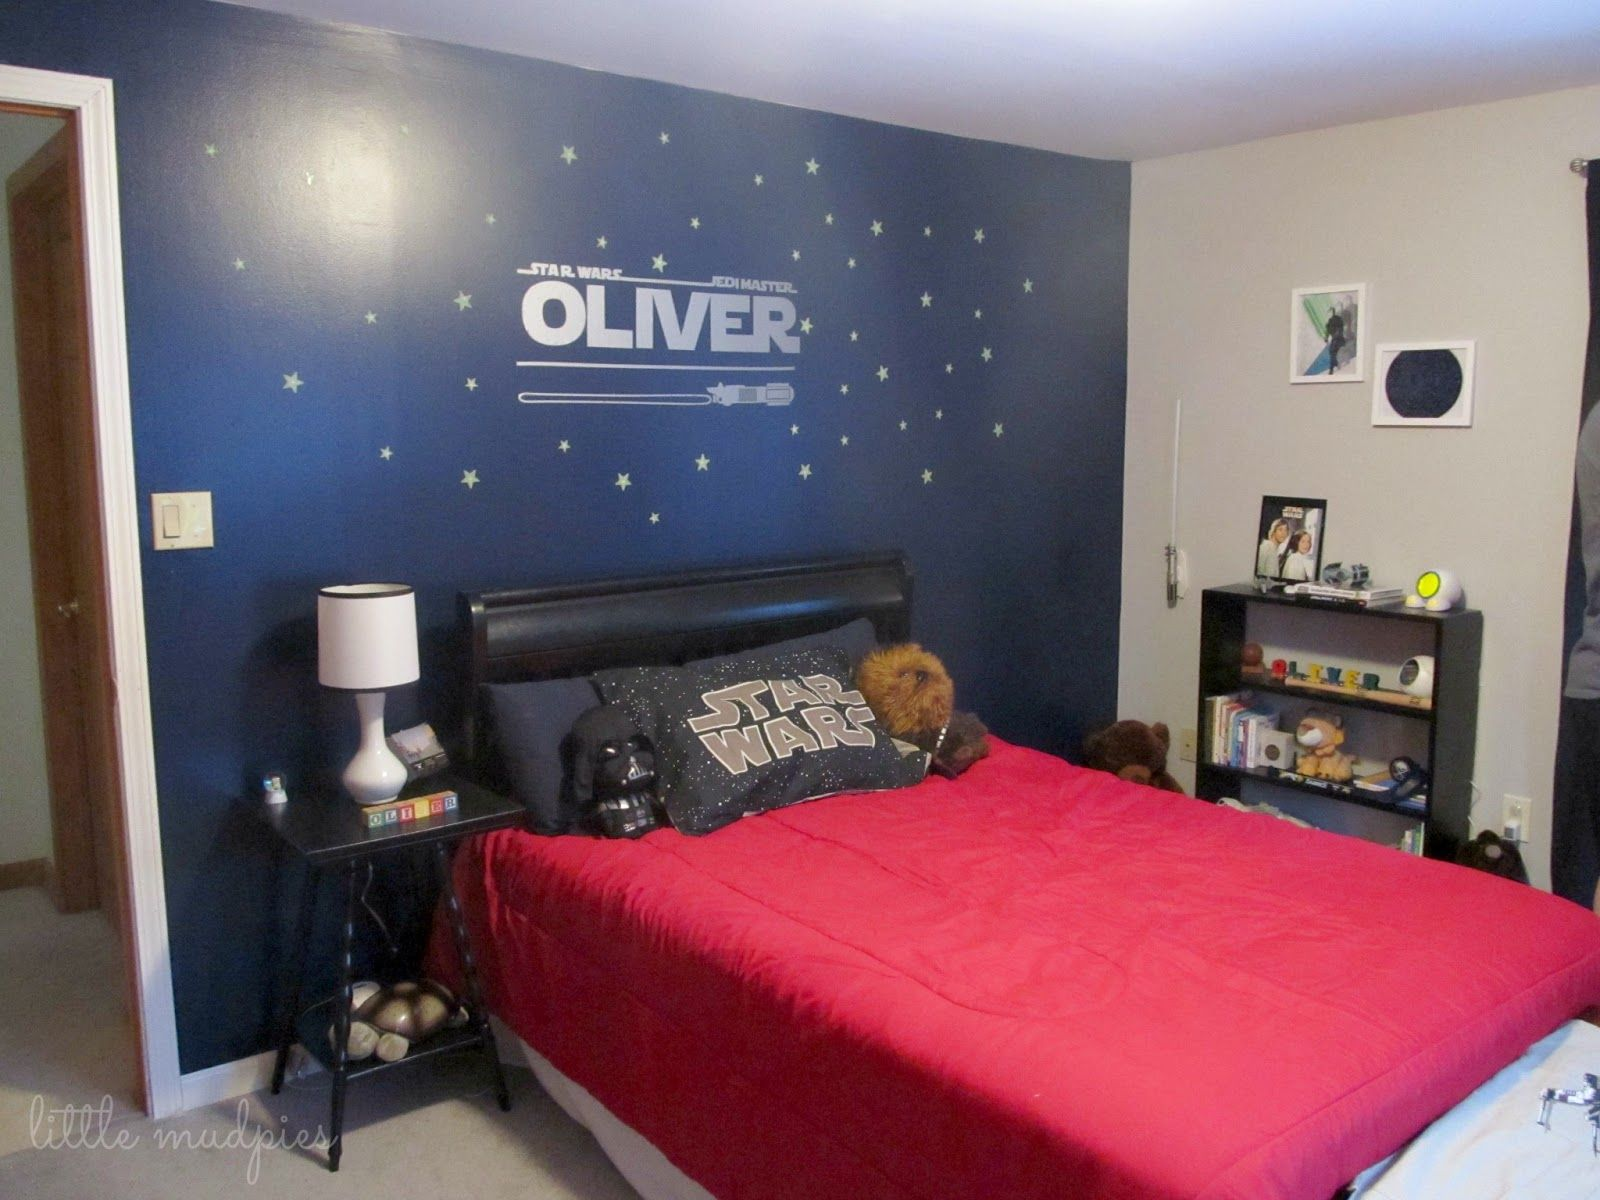 Star Wars Themed Bedroom via Little Mudpies one dark wall is nice ...